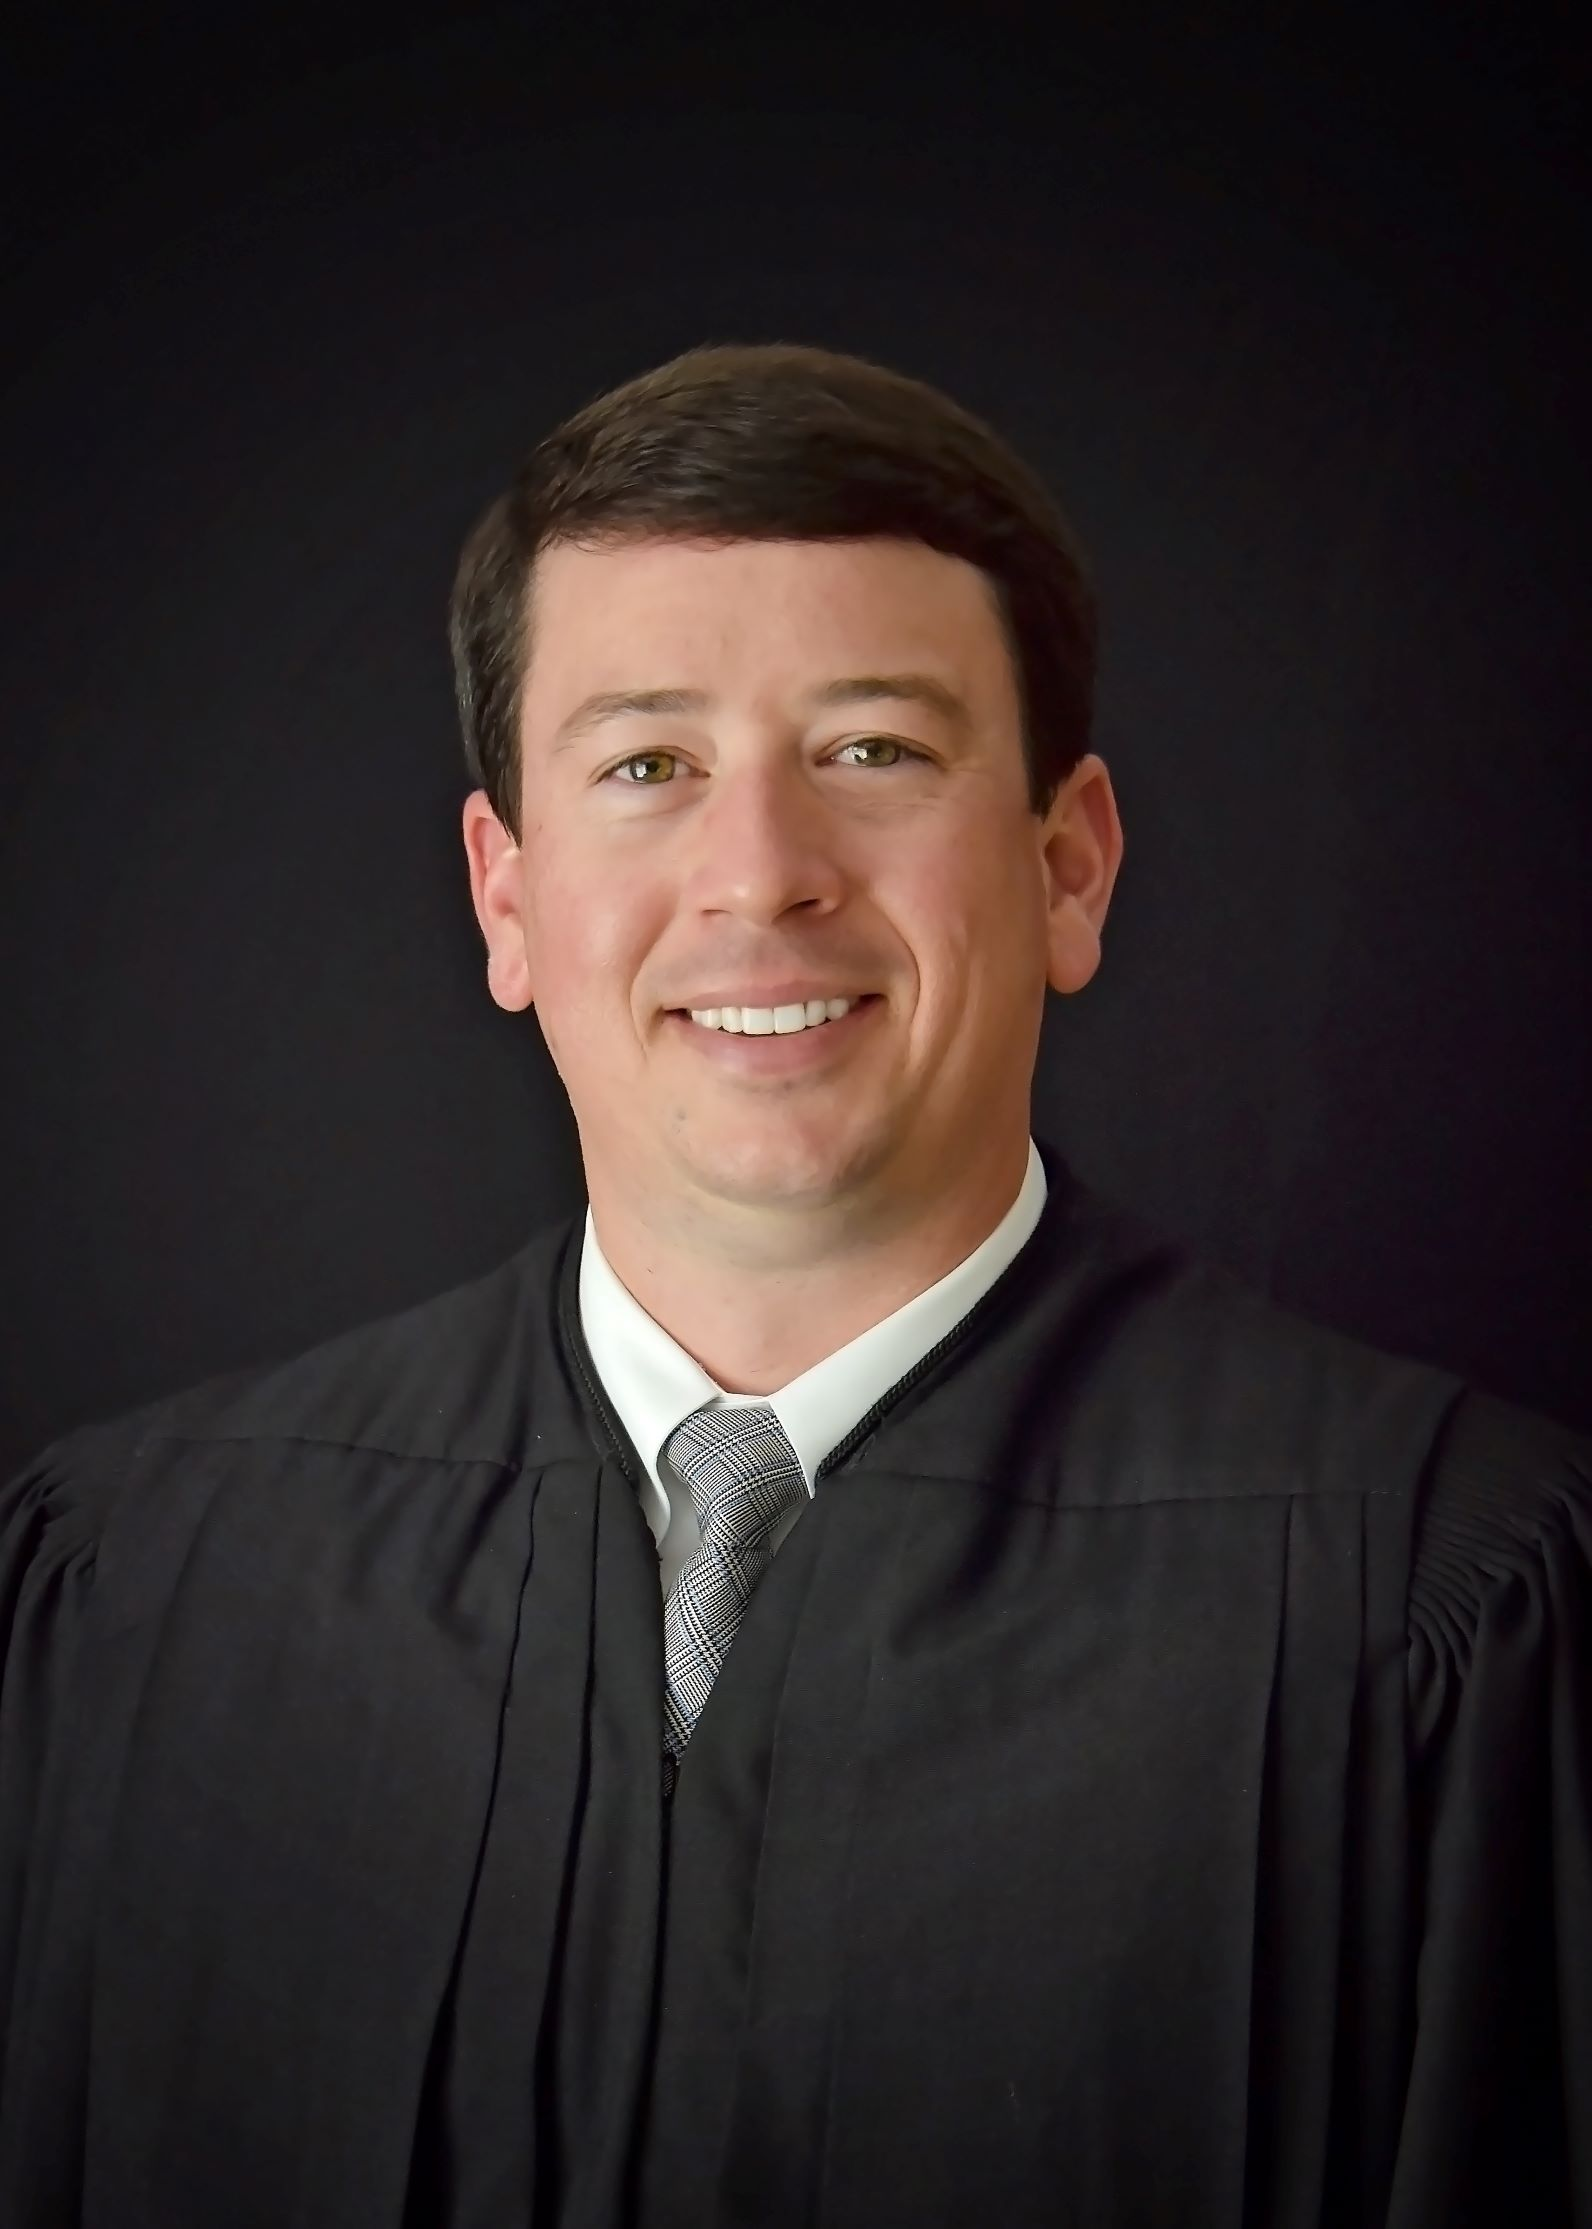 Judge tatum Davis